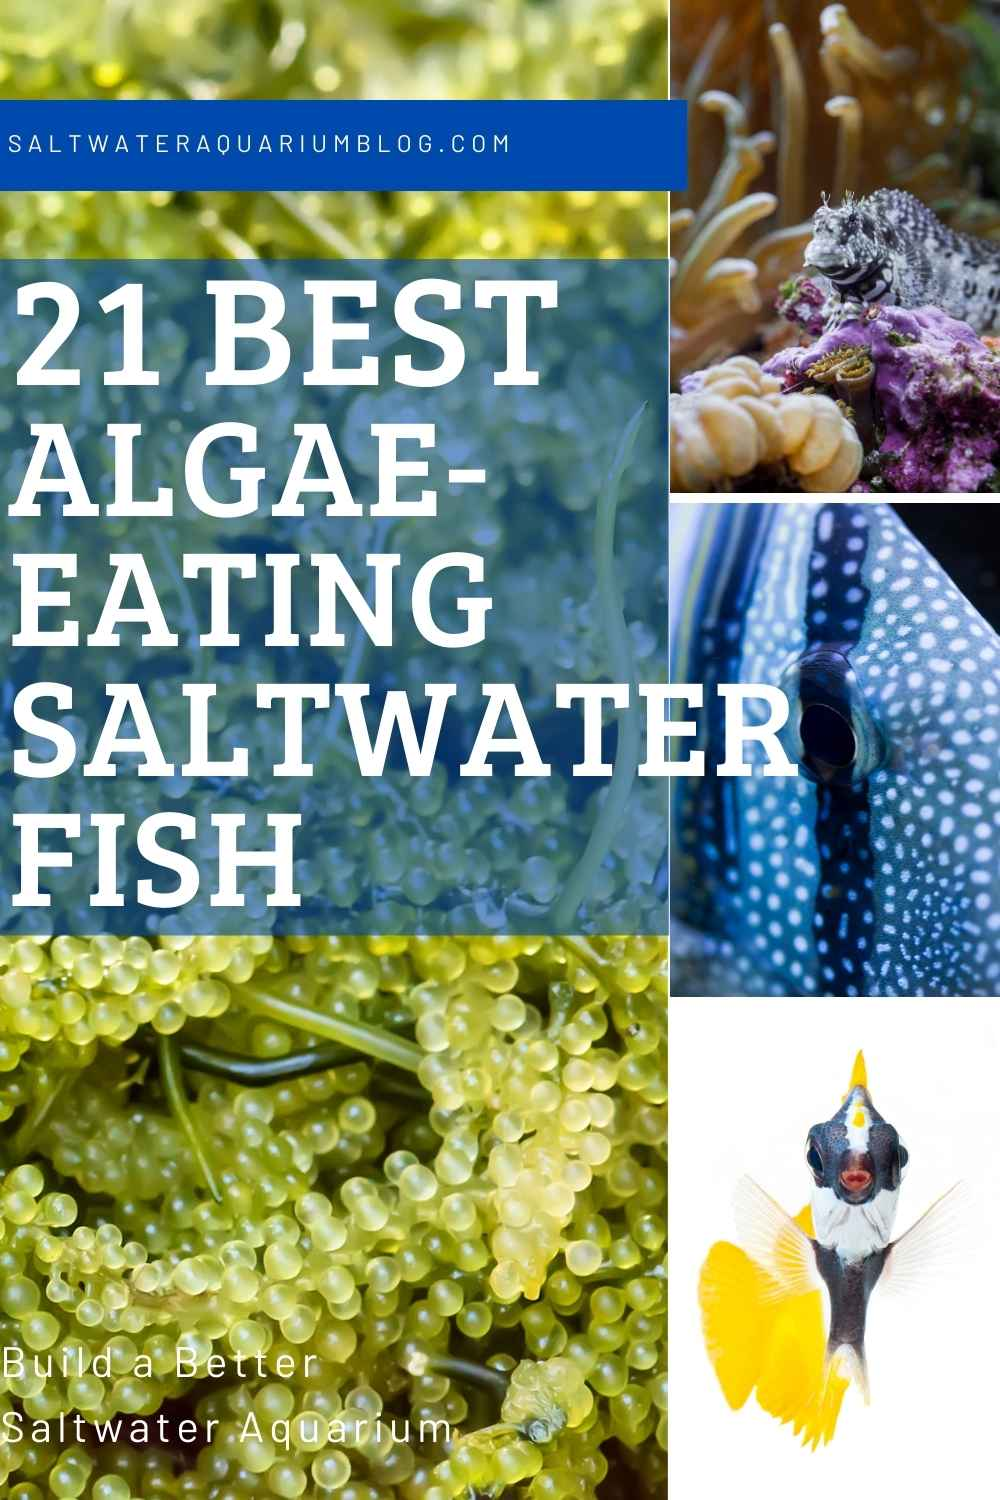 21 best algae eating saltwater fish image for pinterest